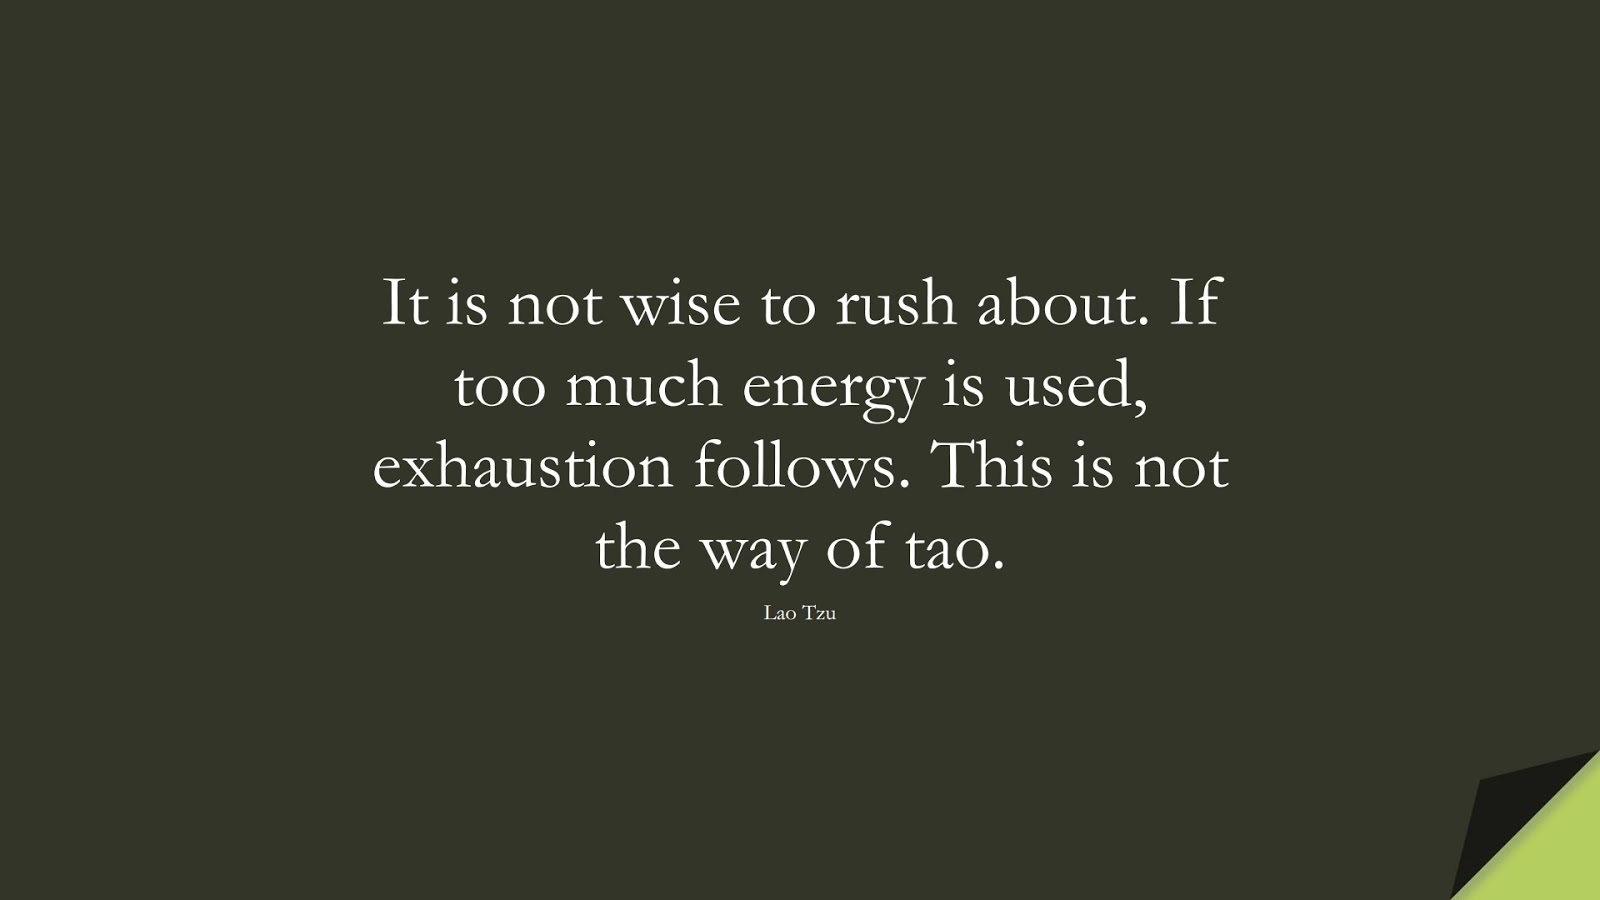 It is not wise to rush about. If too much energy is used, exhaustion follows. This is not the way of tao. (Lao Tzu);  #CalmQuotes